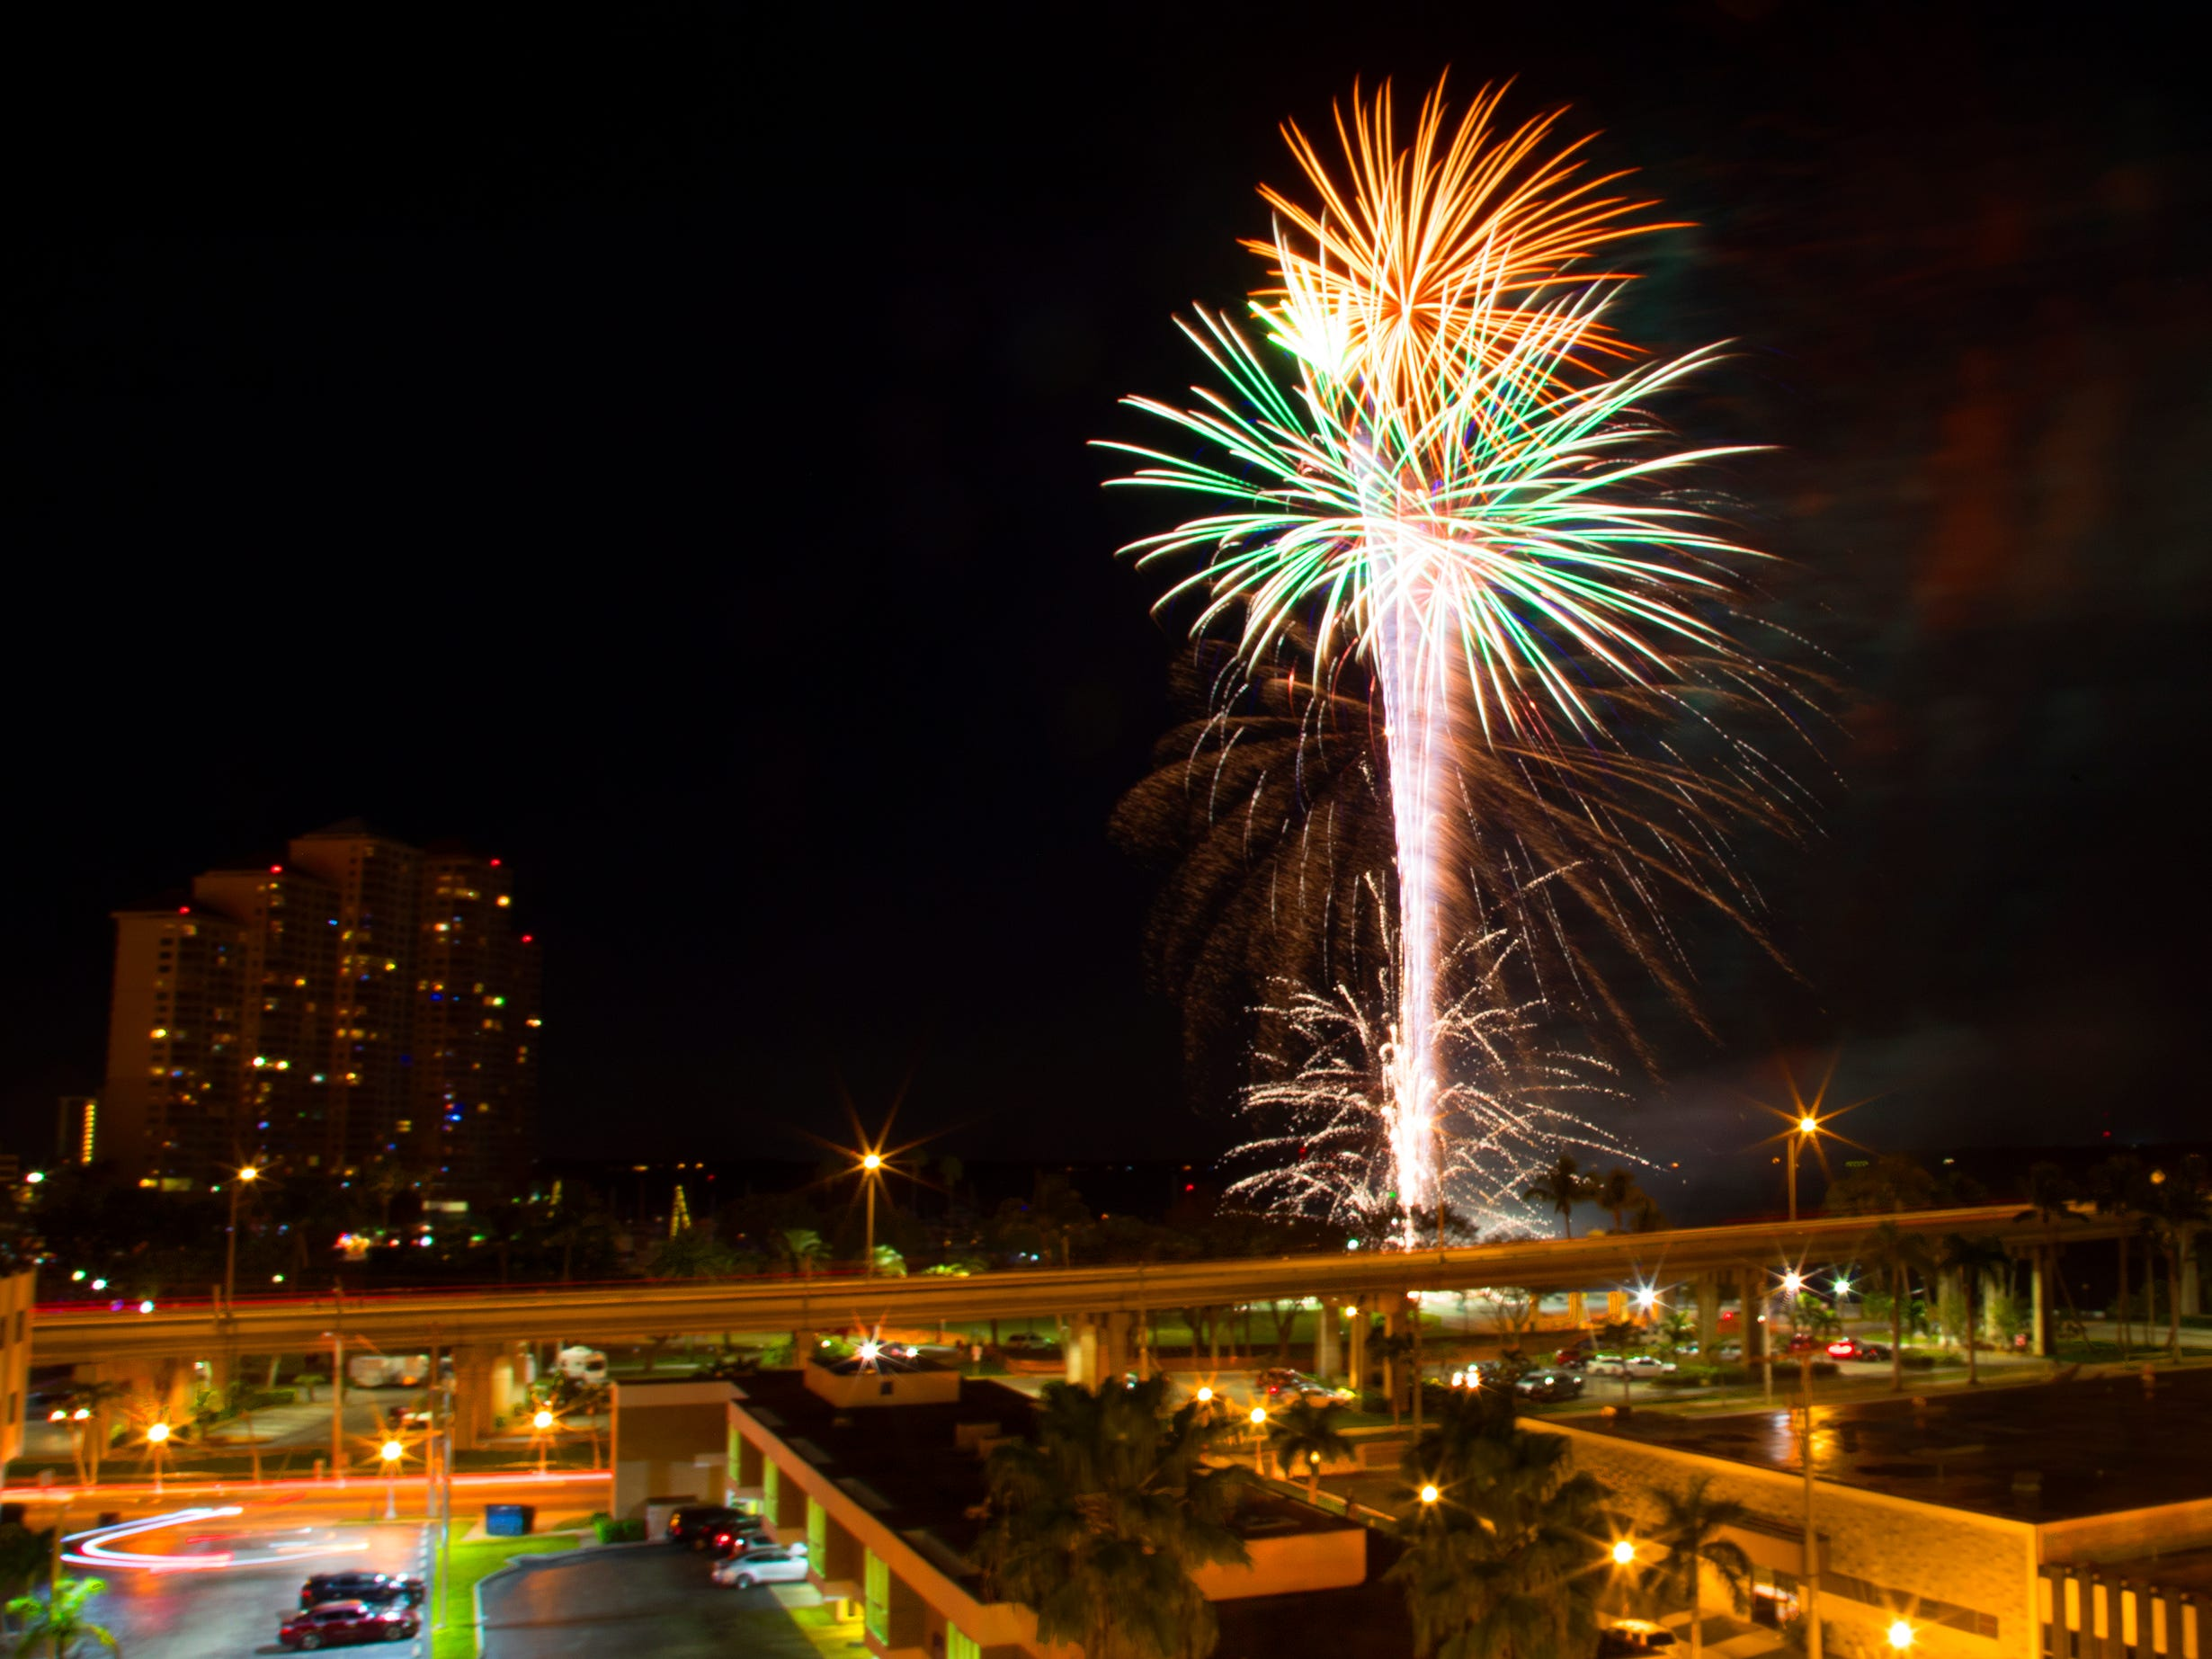 The Edison Festival of Light fireworks show illuminates Centennial Park on Saturday in downtown Fort Myers.